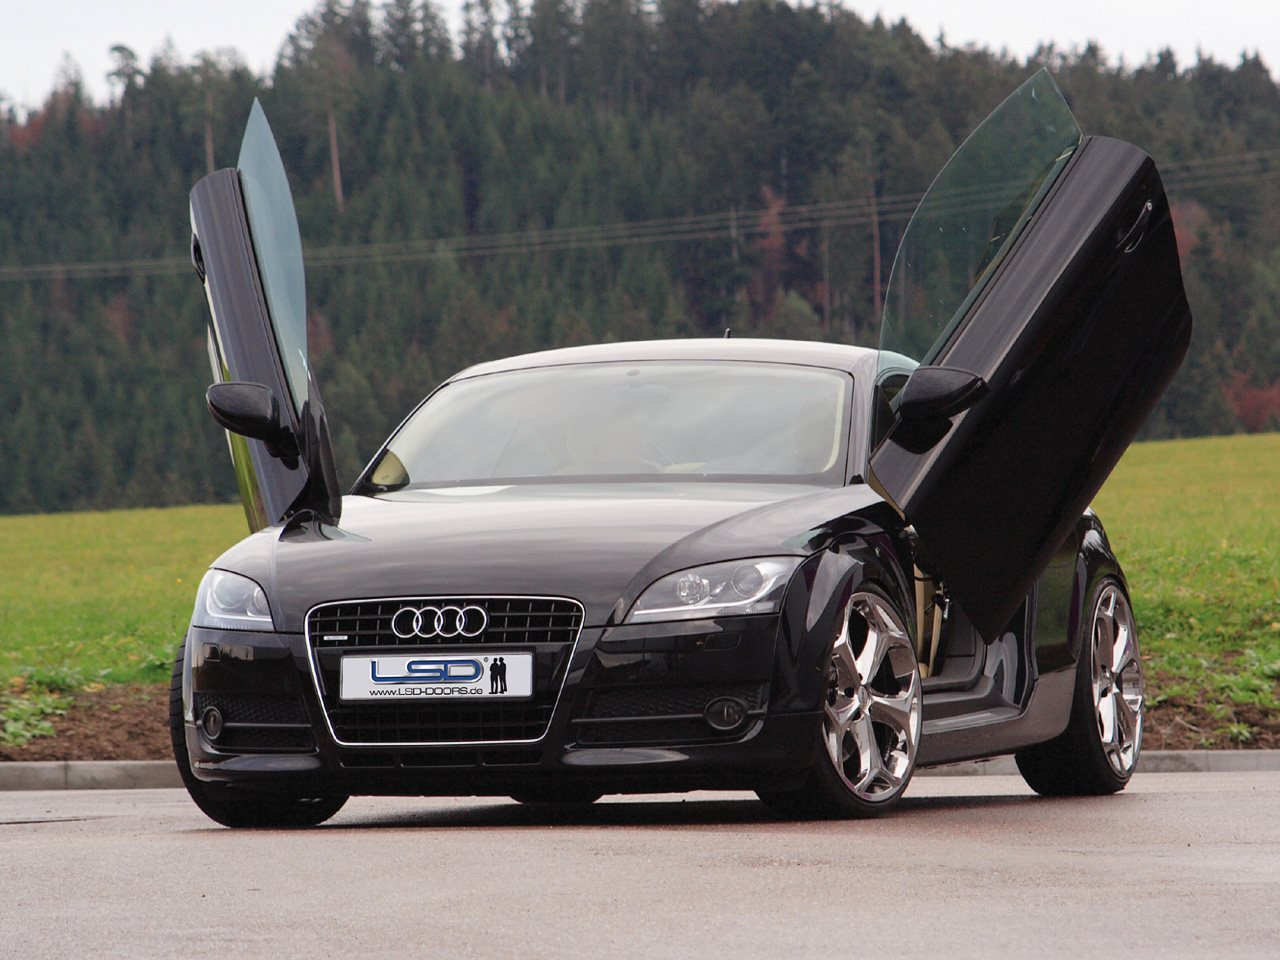 Audi Tt 11 High Quality Audi Tt Pictures On Motorinfo Org